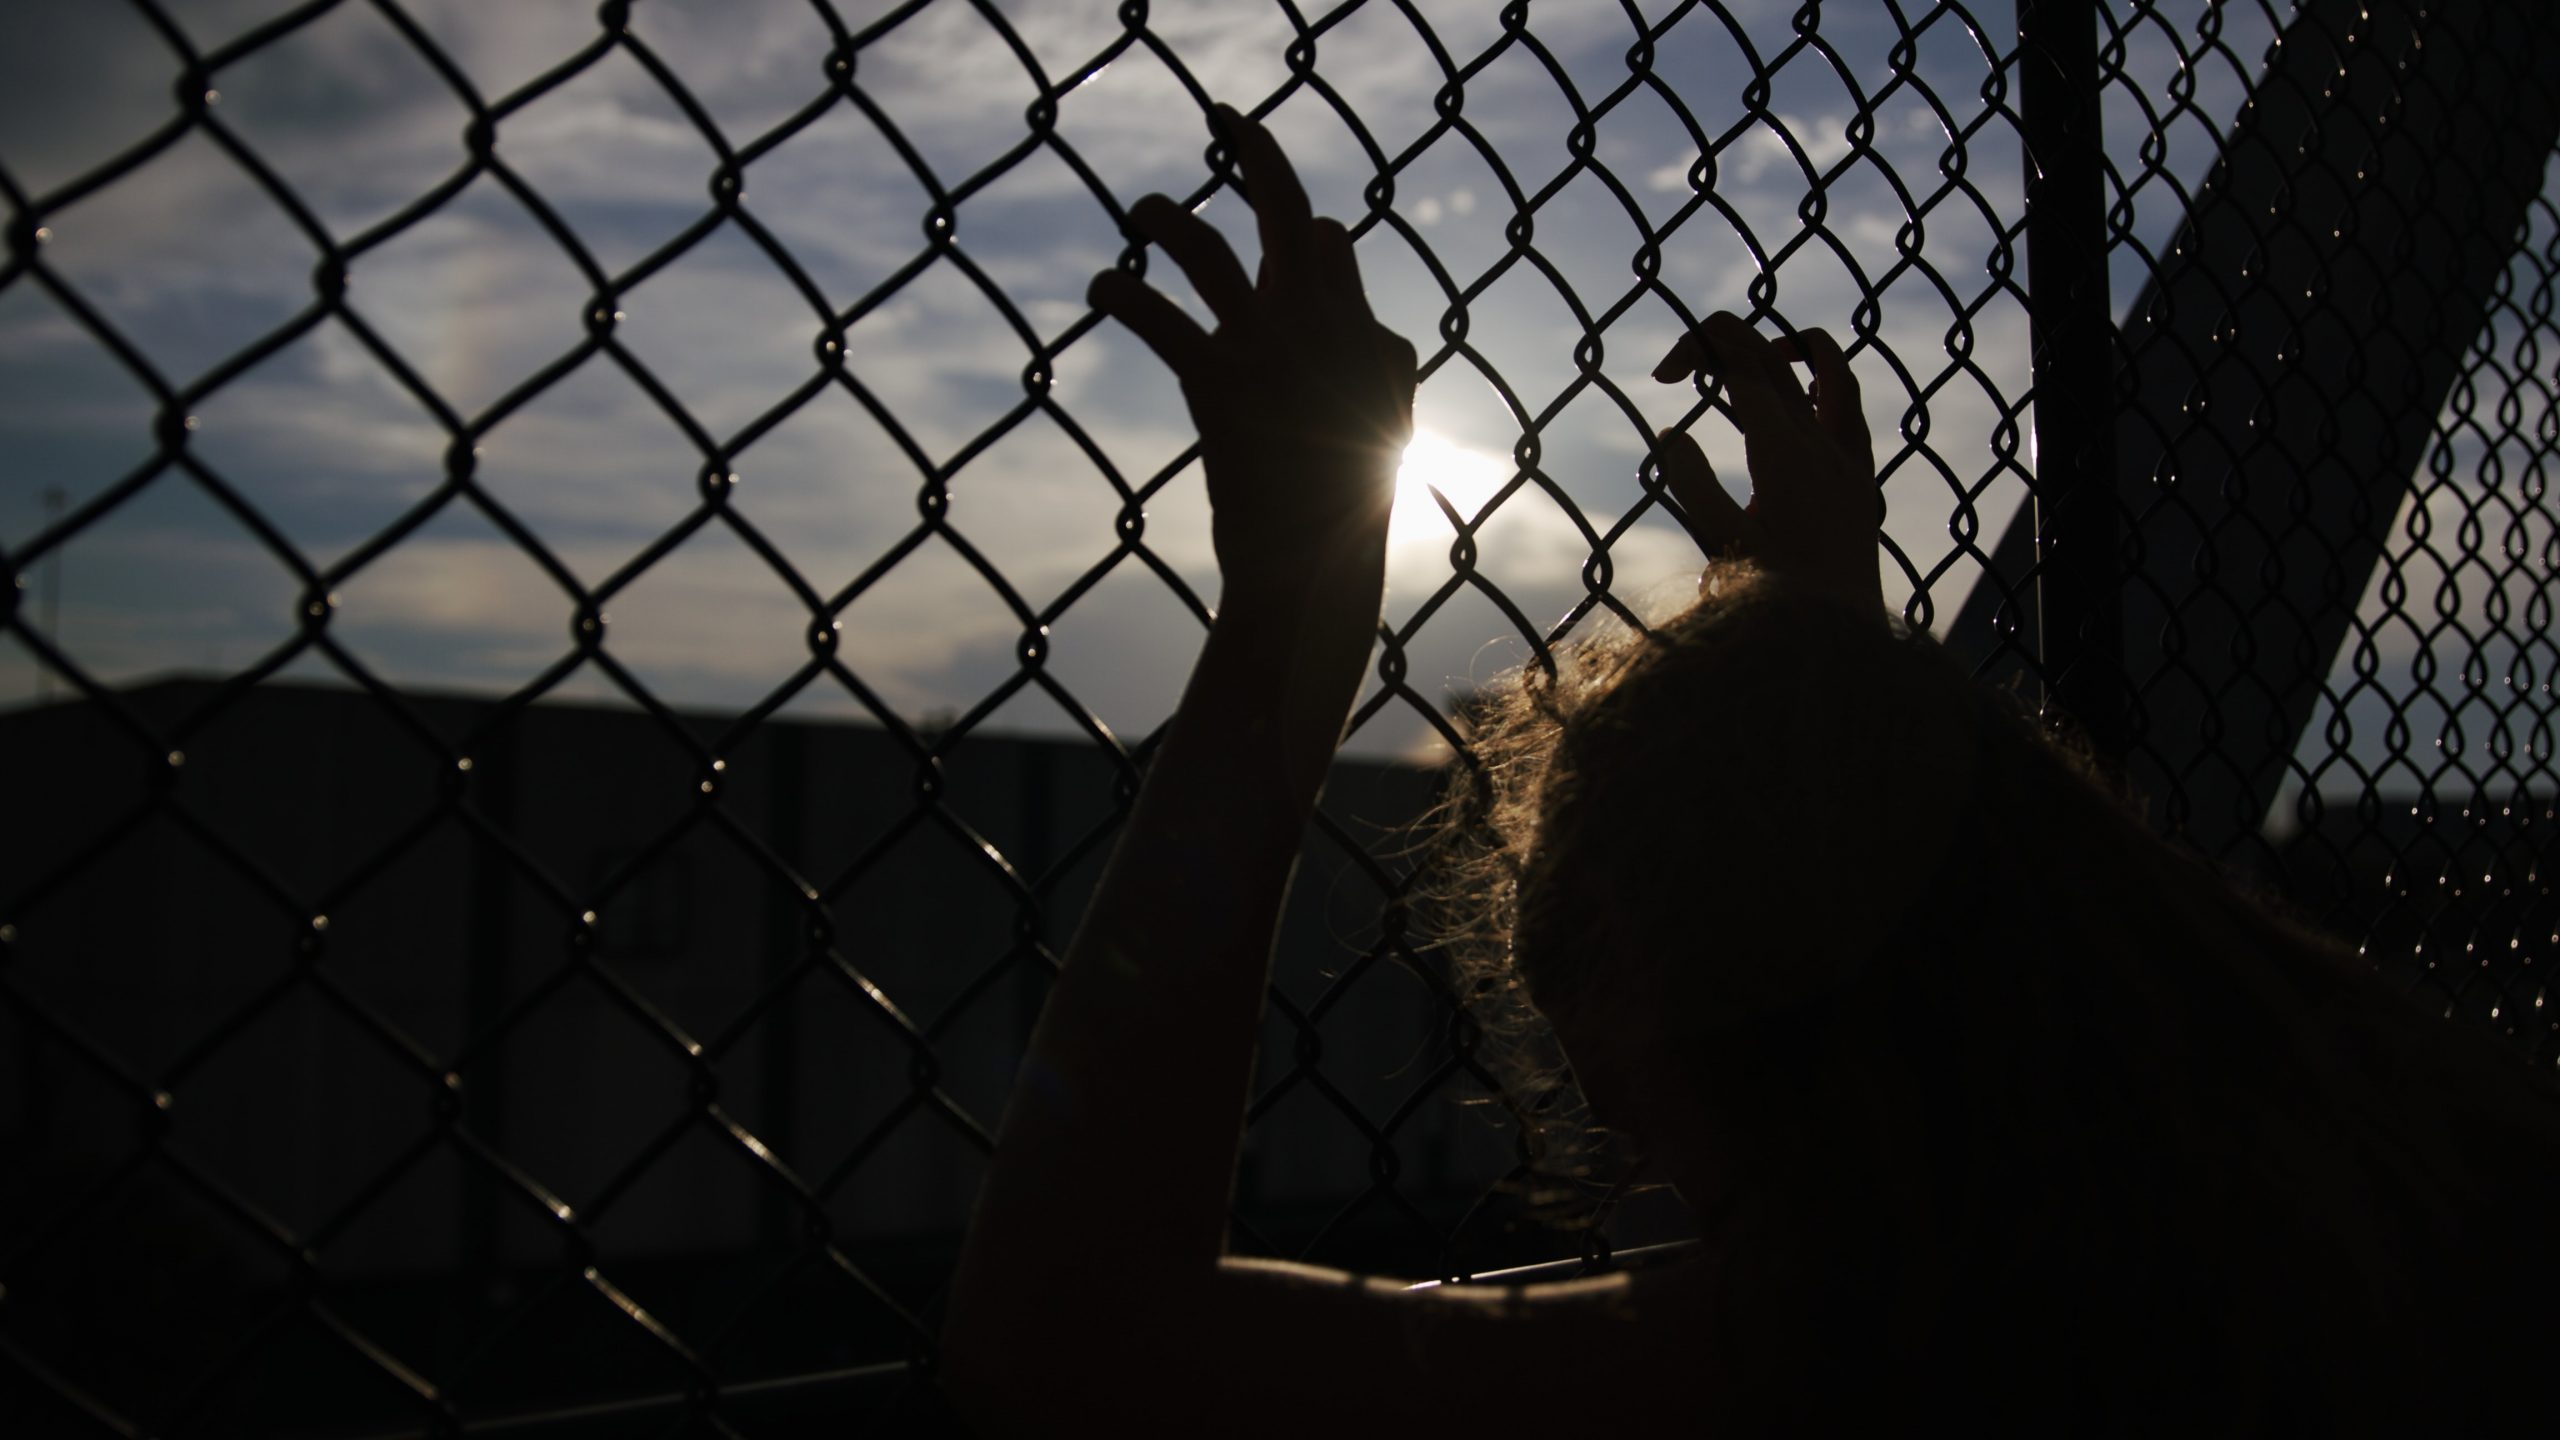 Image of a person holding on chain link fence.